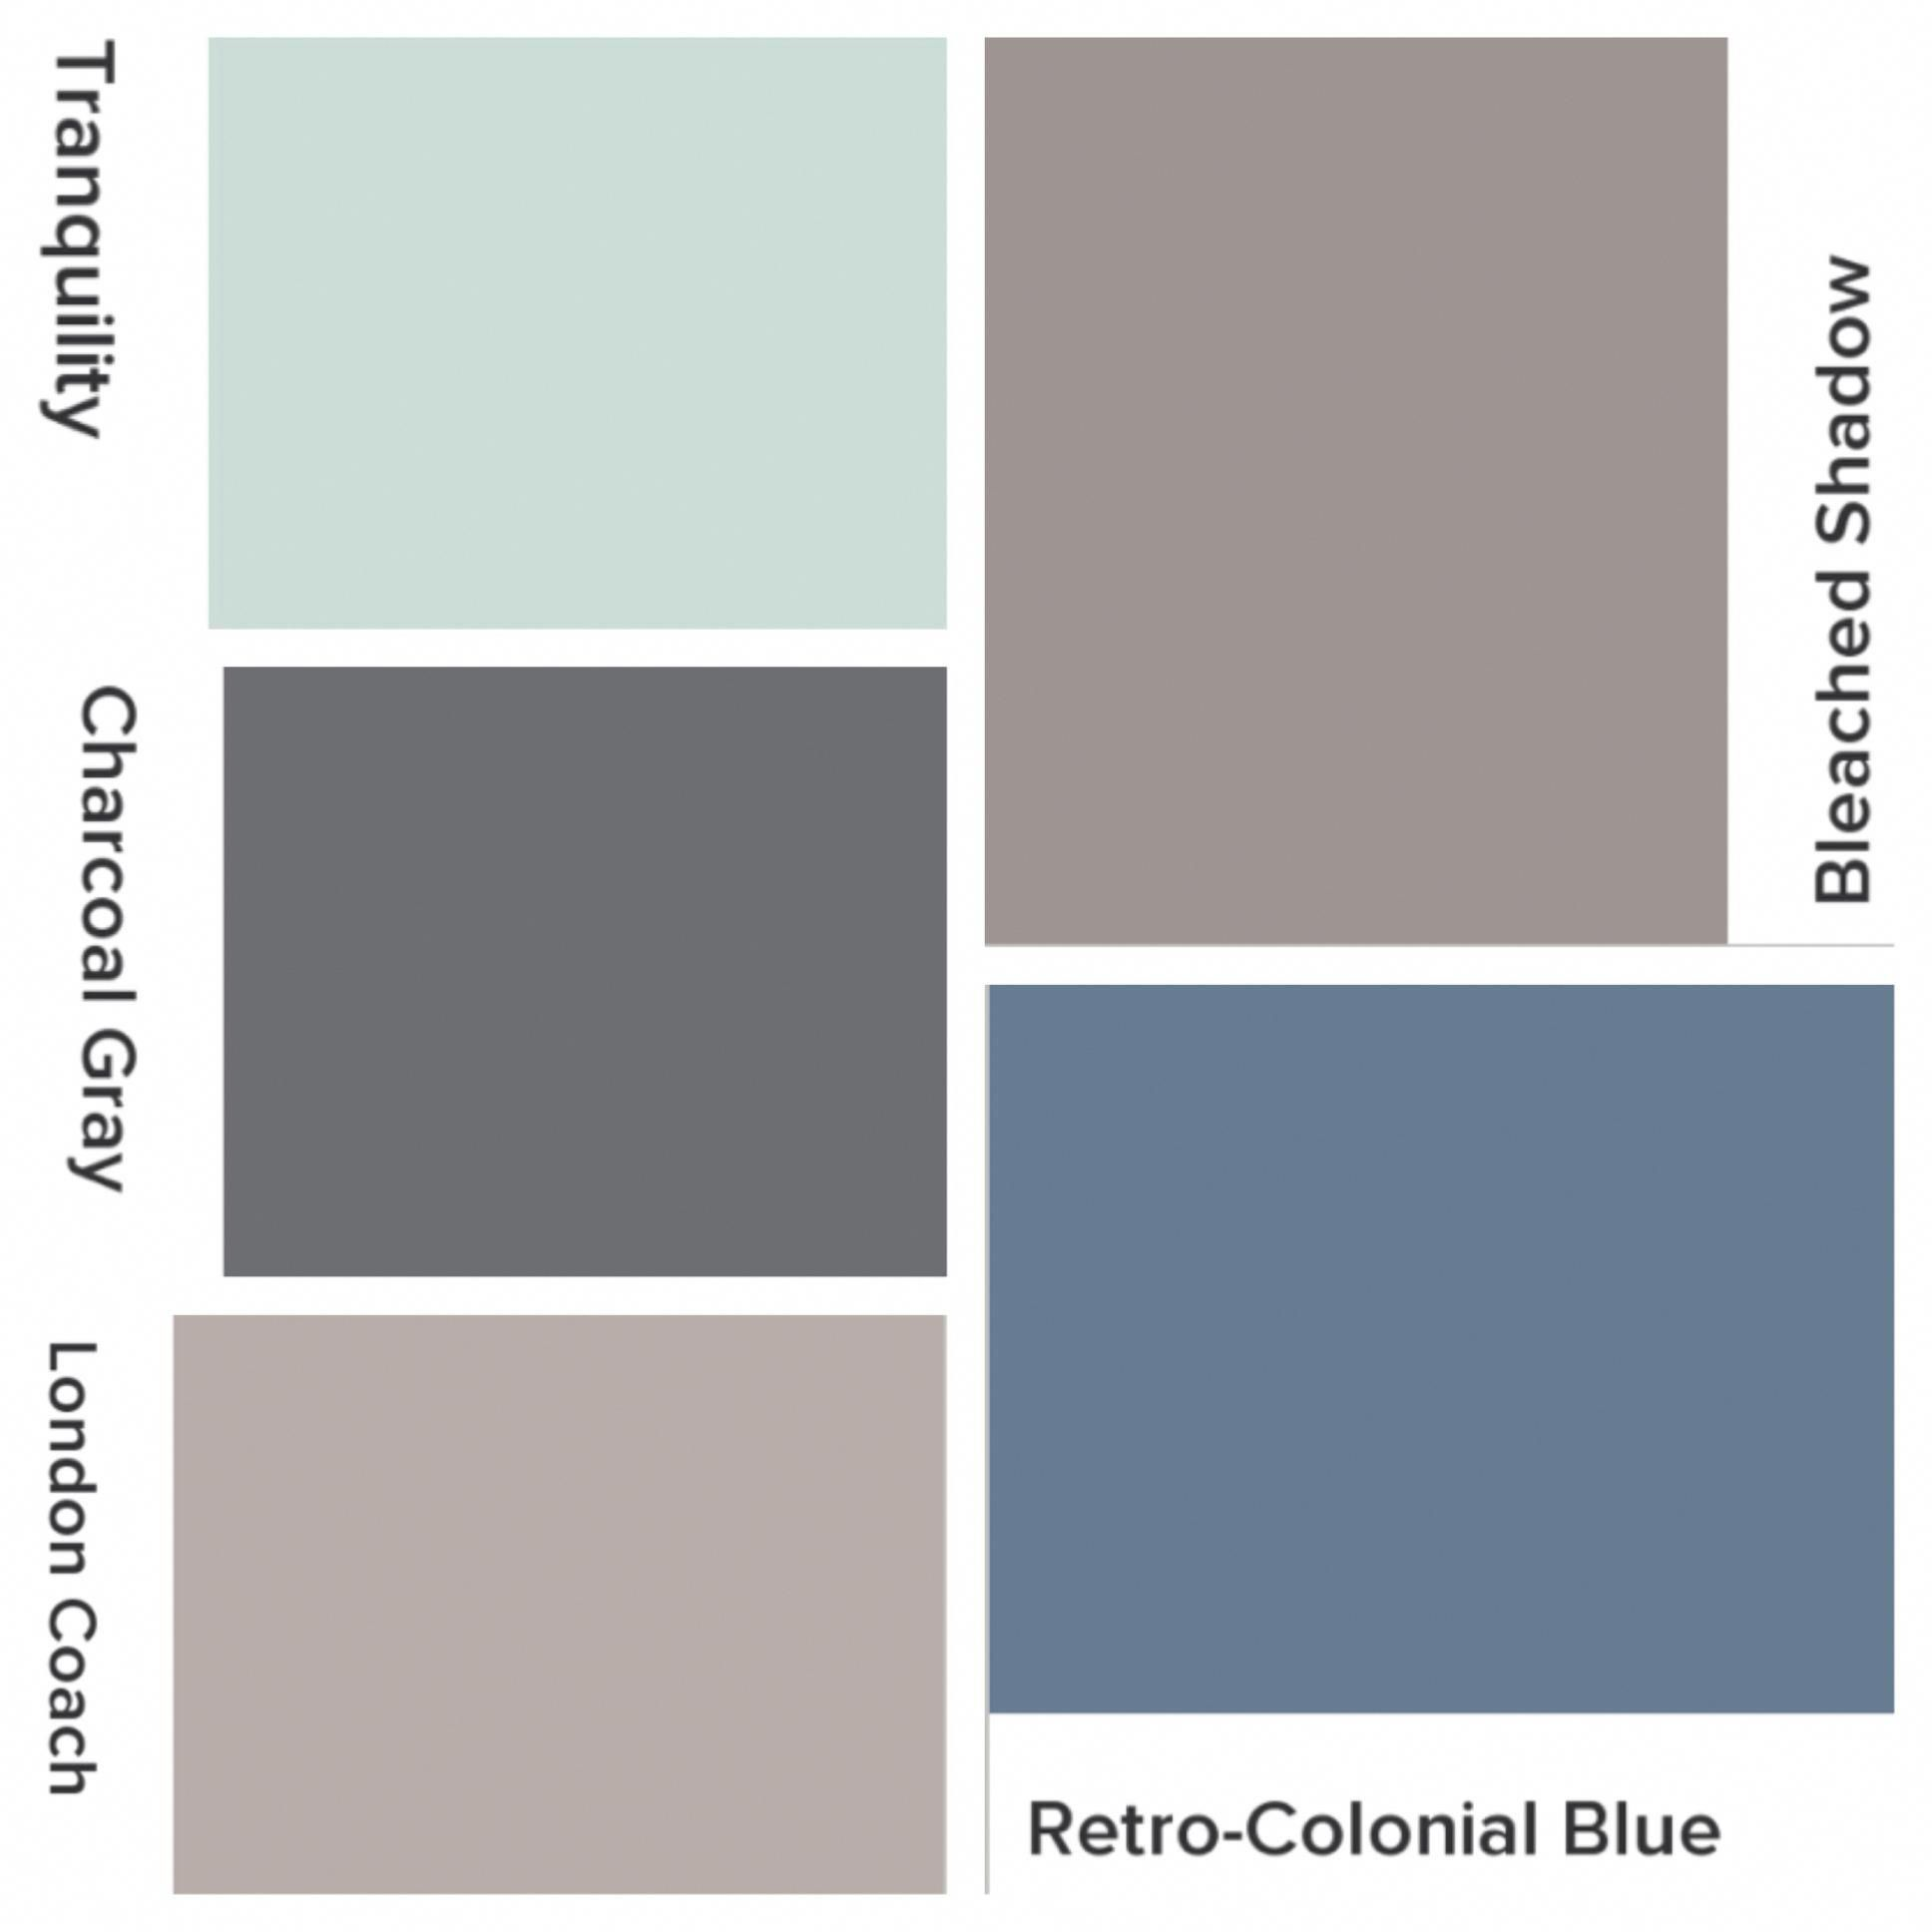 Whole House Color Scheme Valspar Lowes Bleached Shadow Kitchen Retro Colonial Blue Office London Coach Living Room Charcoal Gray Interior